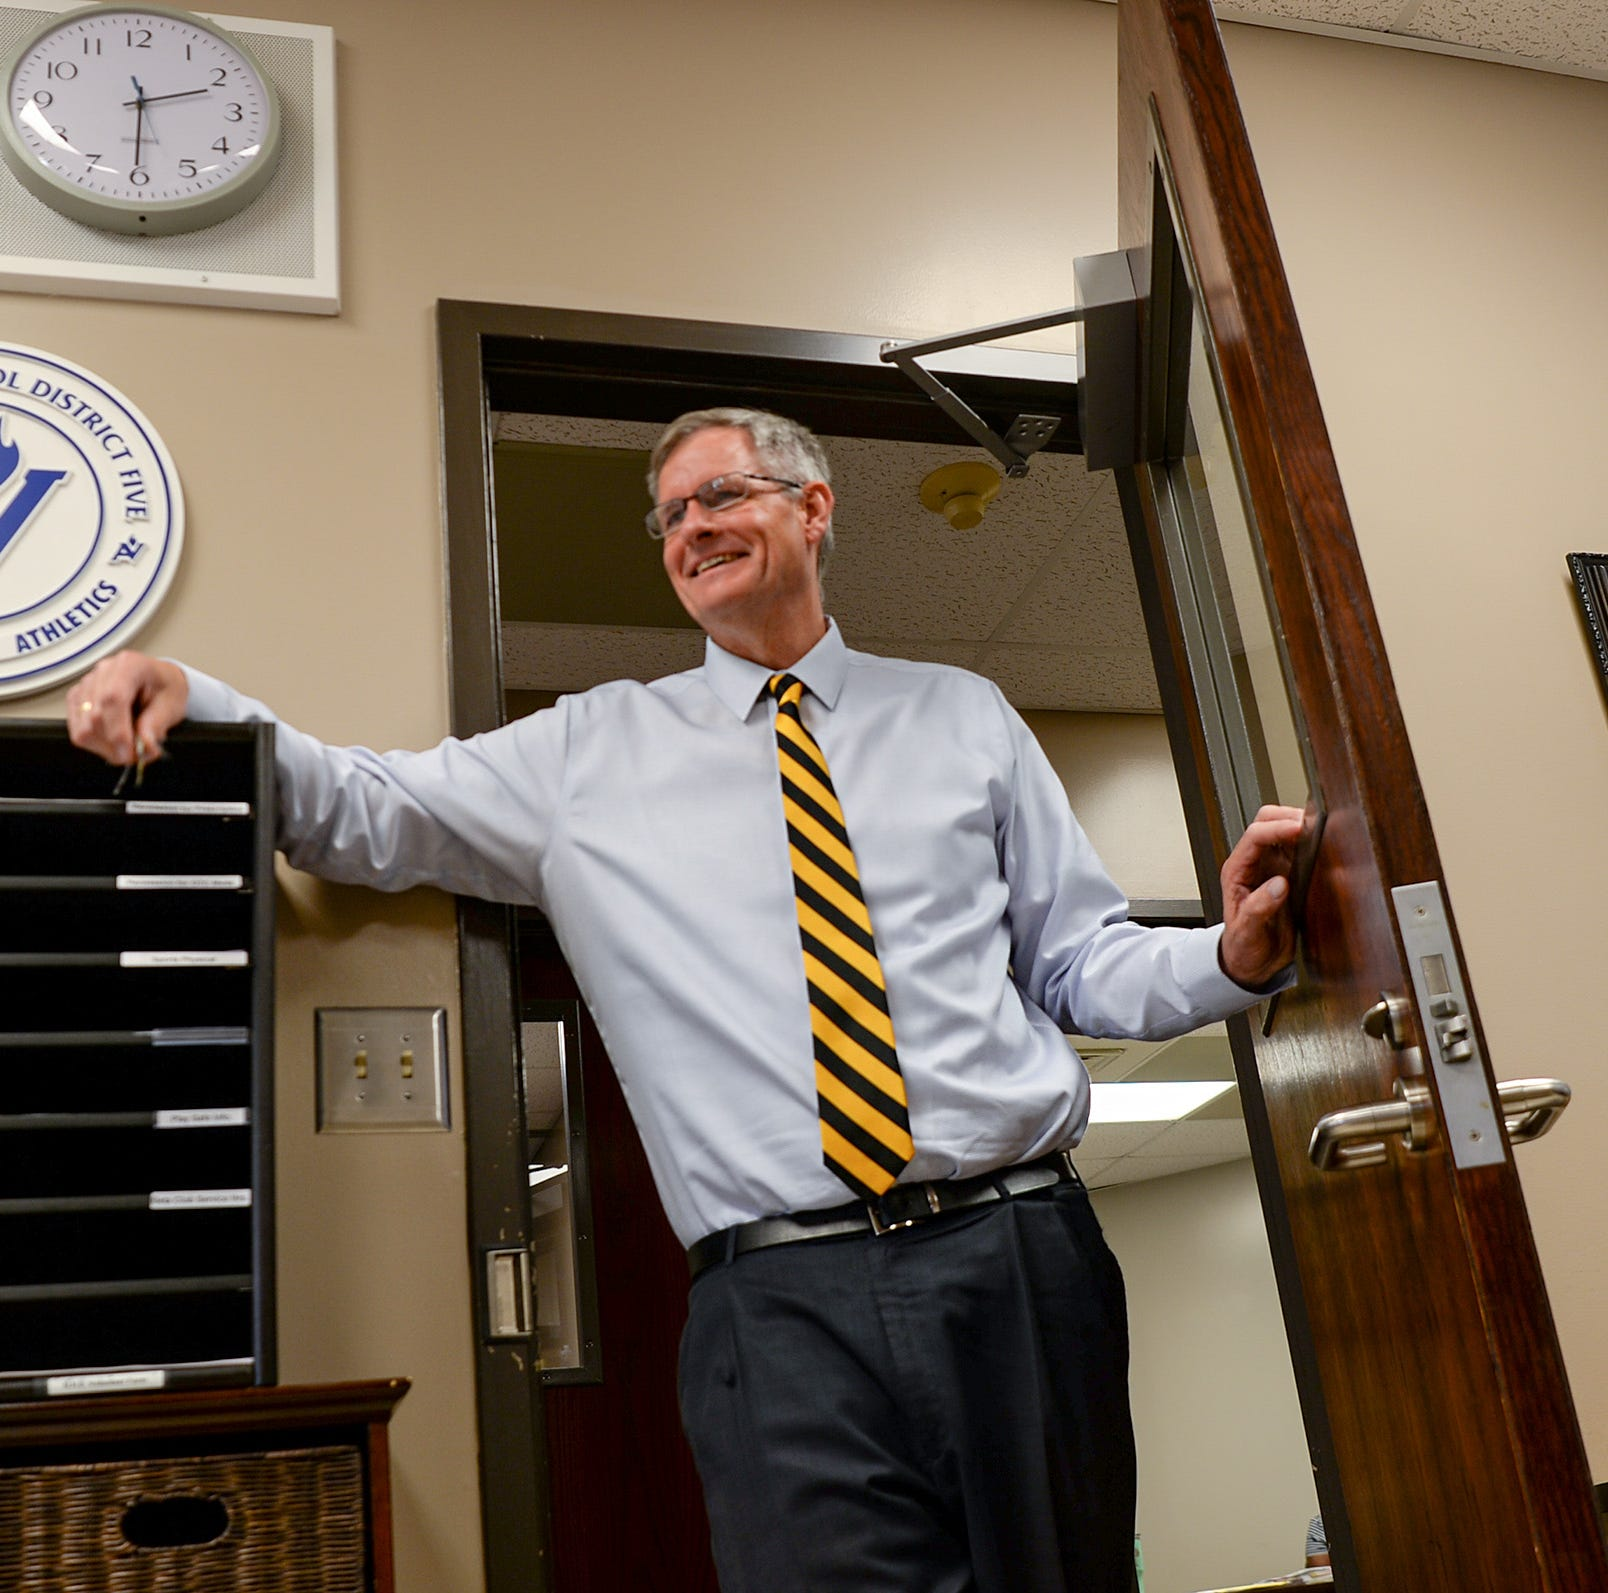 He 'despised school' and 'got in trouble.' Then he left his mark leading T.L. Hanna High